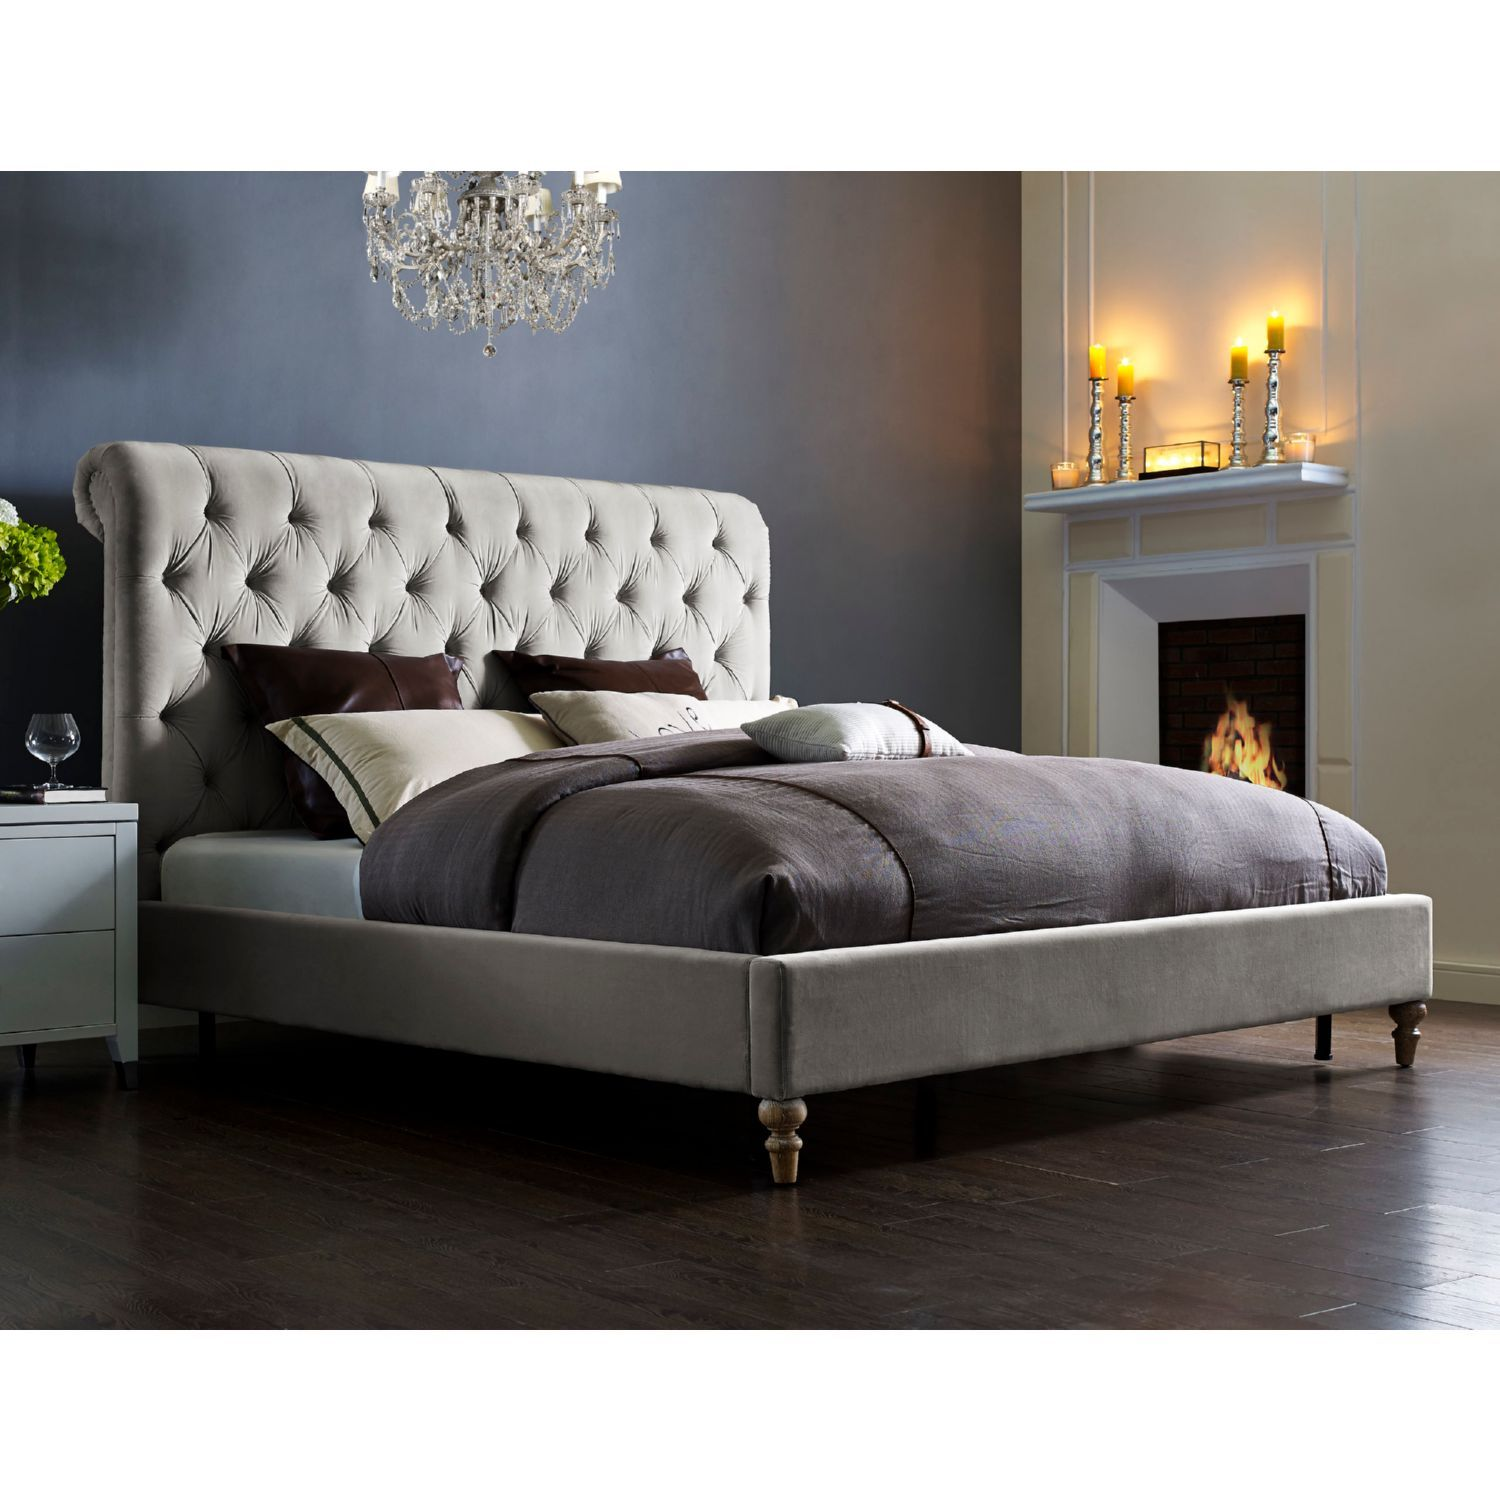 TOV Furniture Putnam Queen Bed in Light Grey Tufted Velvet w ...